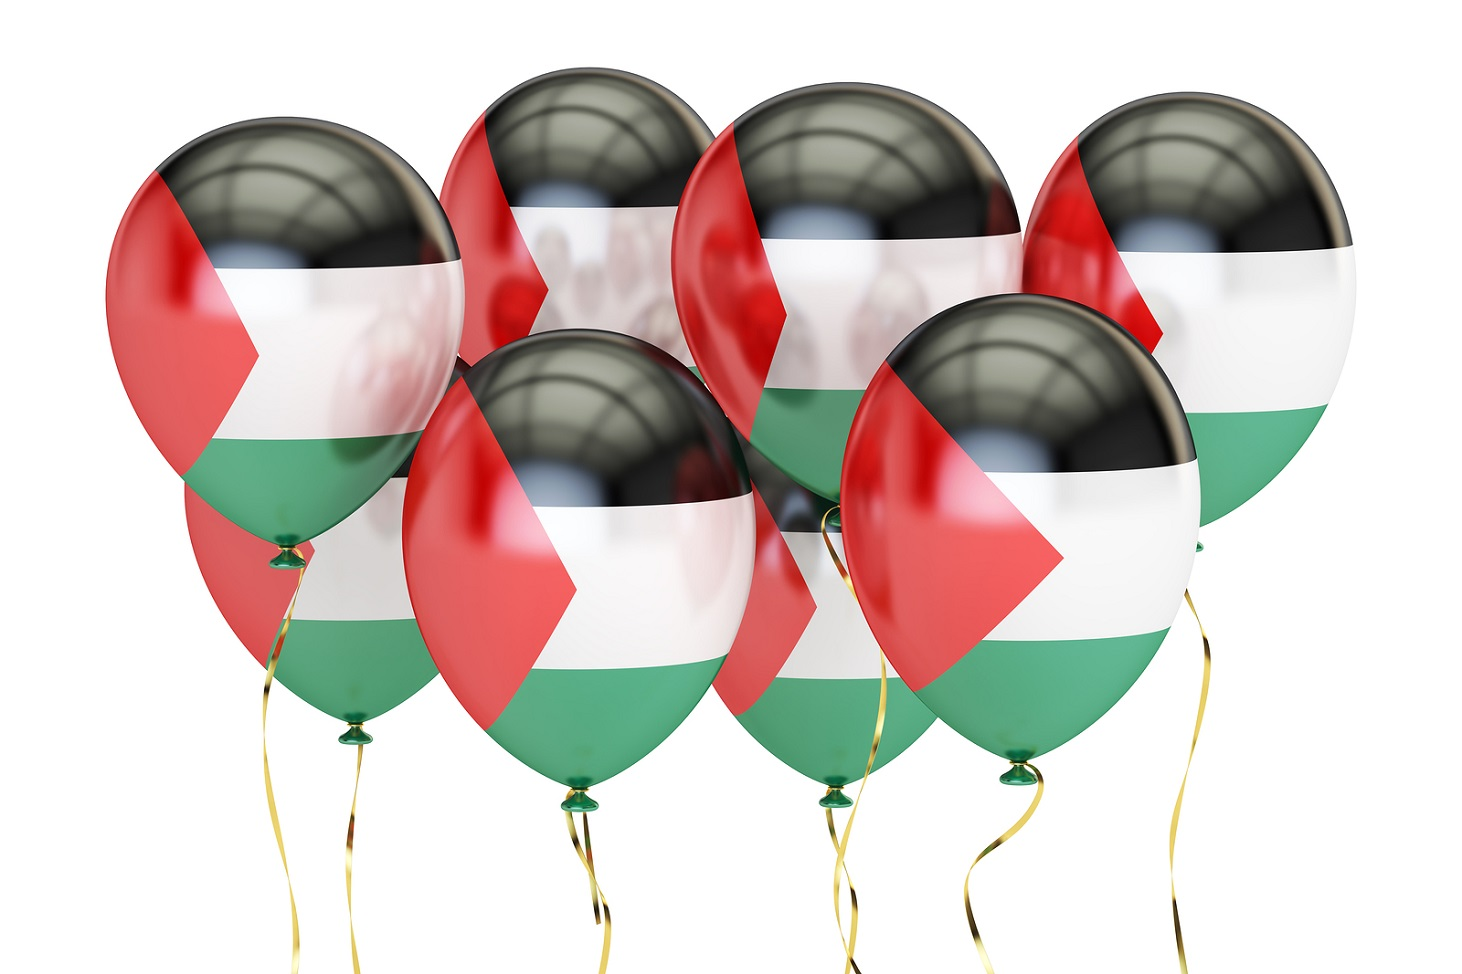 Balloons with flag of Palestine